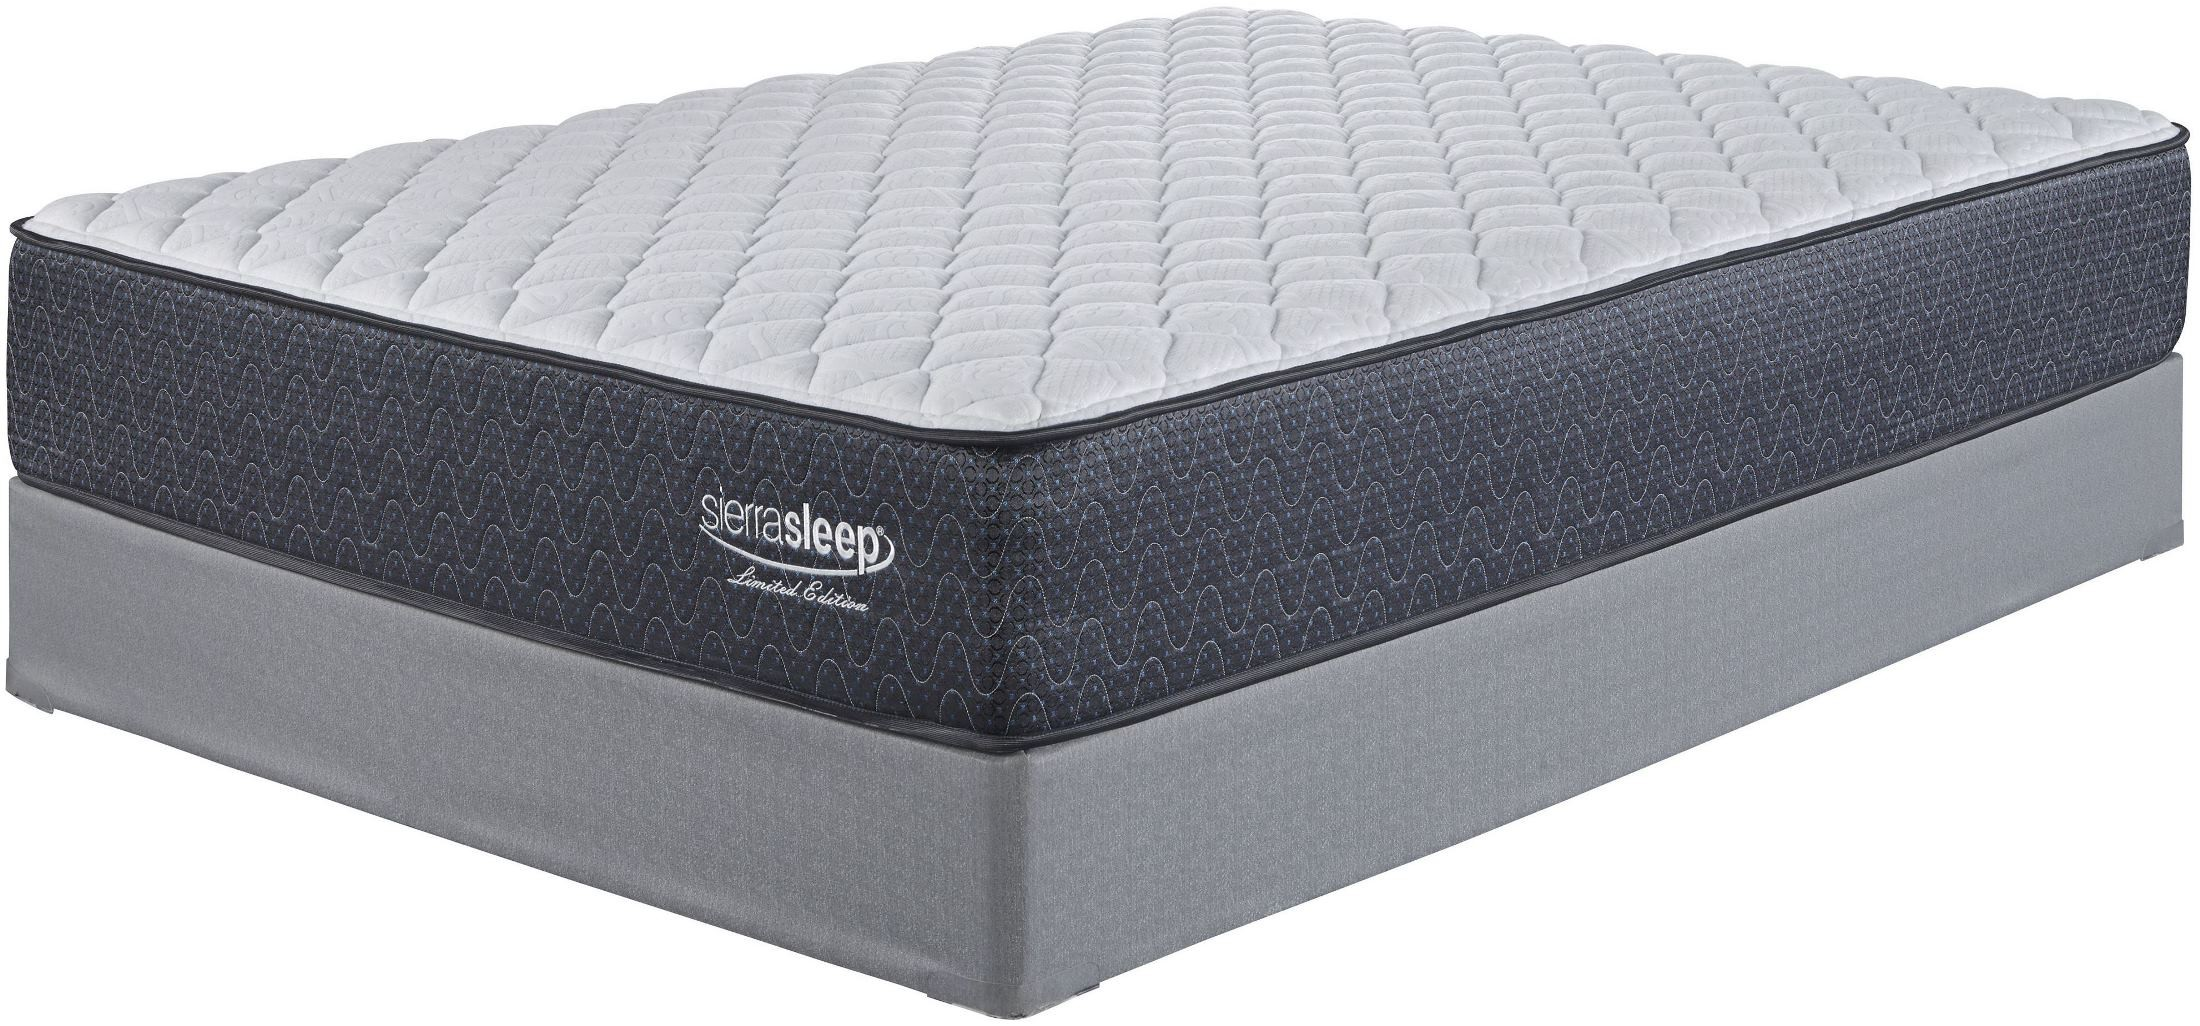 White Queen Firm Mattress From Ashley Coleman Furniture